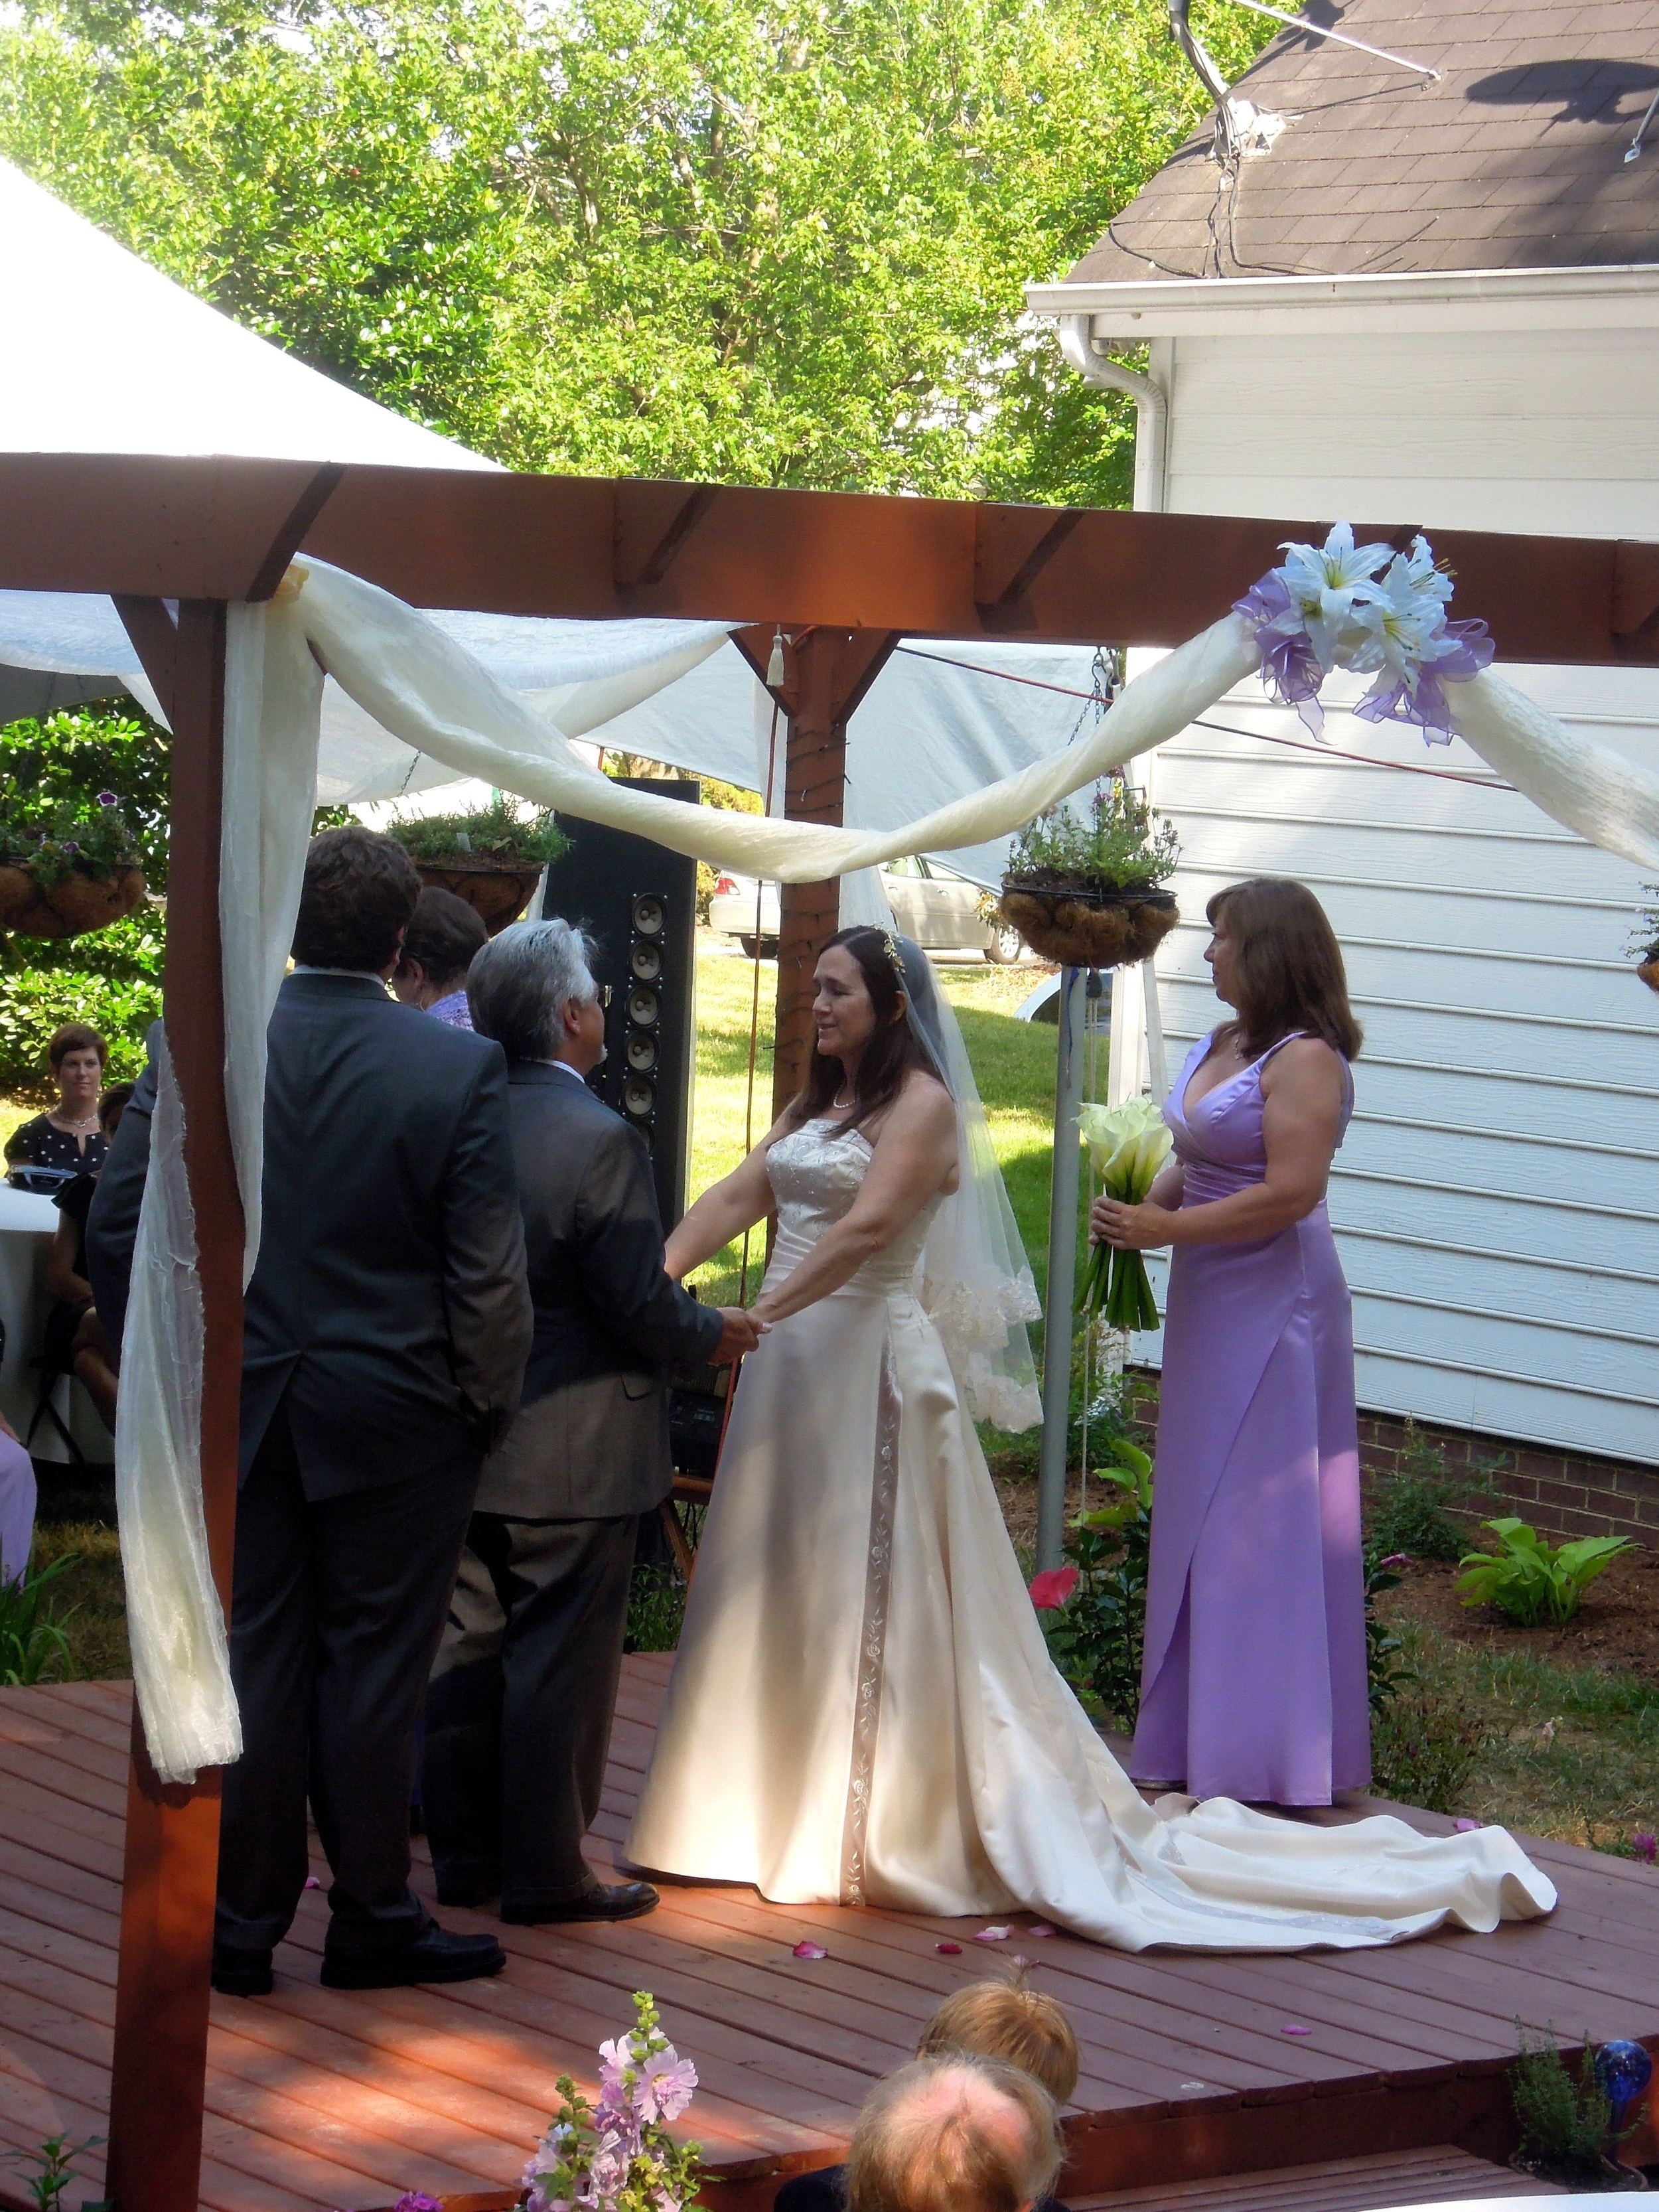 Kelly and David built a gazebo for their backyard just for the wedding surrounded by their families and friends.